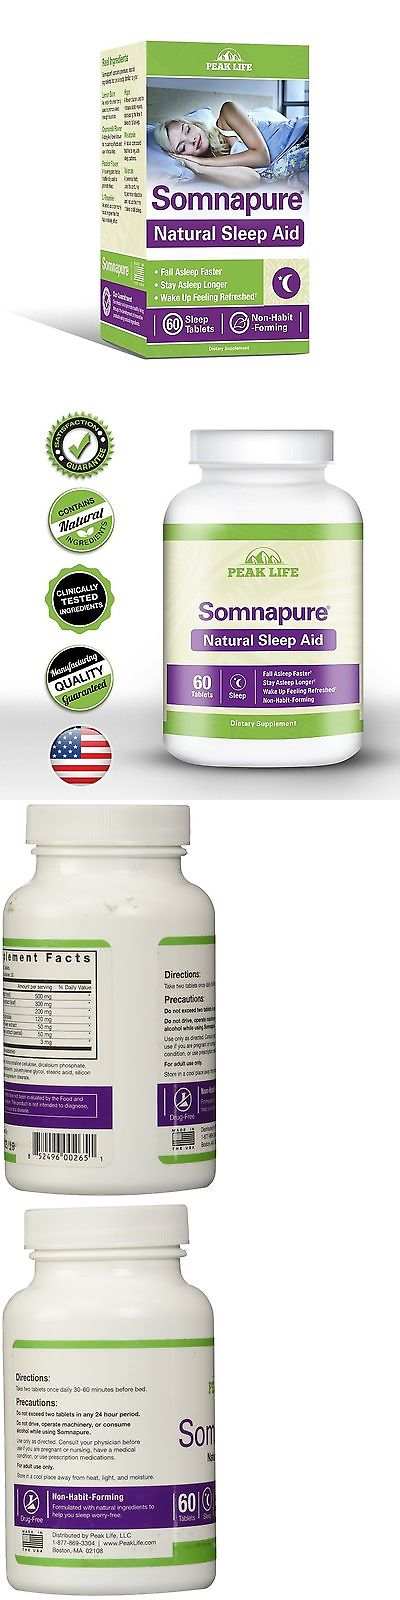 Other Sleeping Aids: Peak Life Somnapure Natural Sleep Aid 60 Count New Free Shipping BUY IT NOW ONLY: $30.77